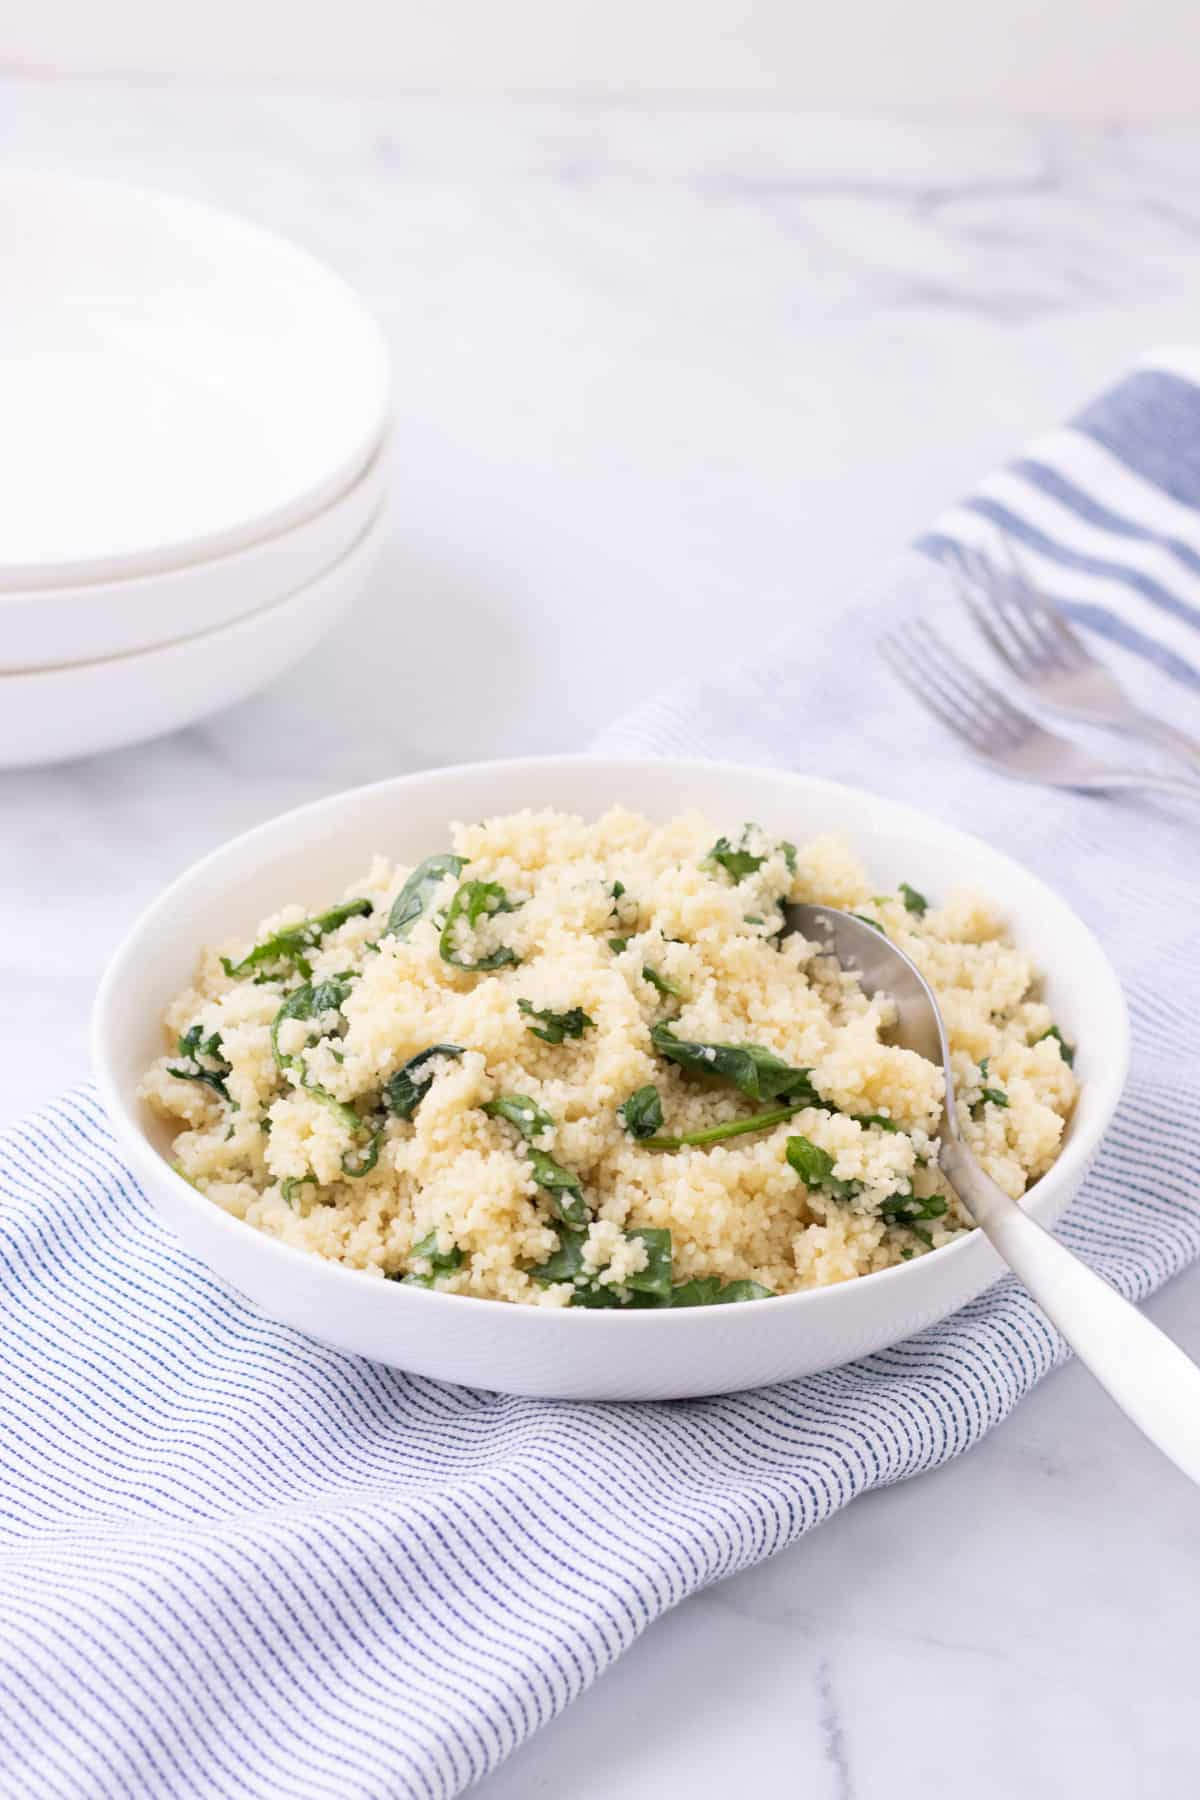 White bowl  with spinach Parmesan couscous on blue and white striped linen with silver spoon and white bowls in left upper background.